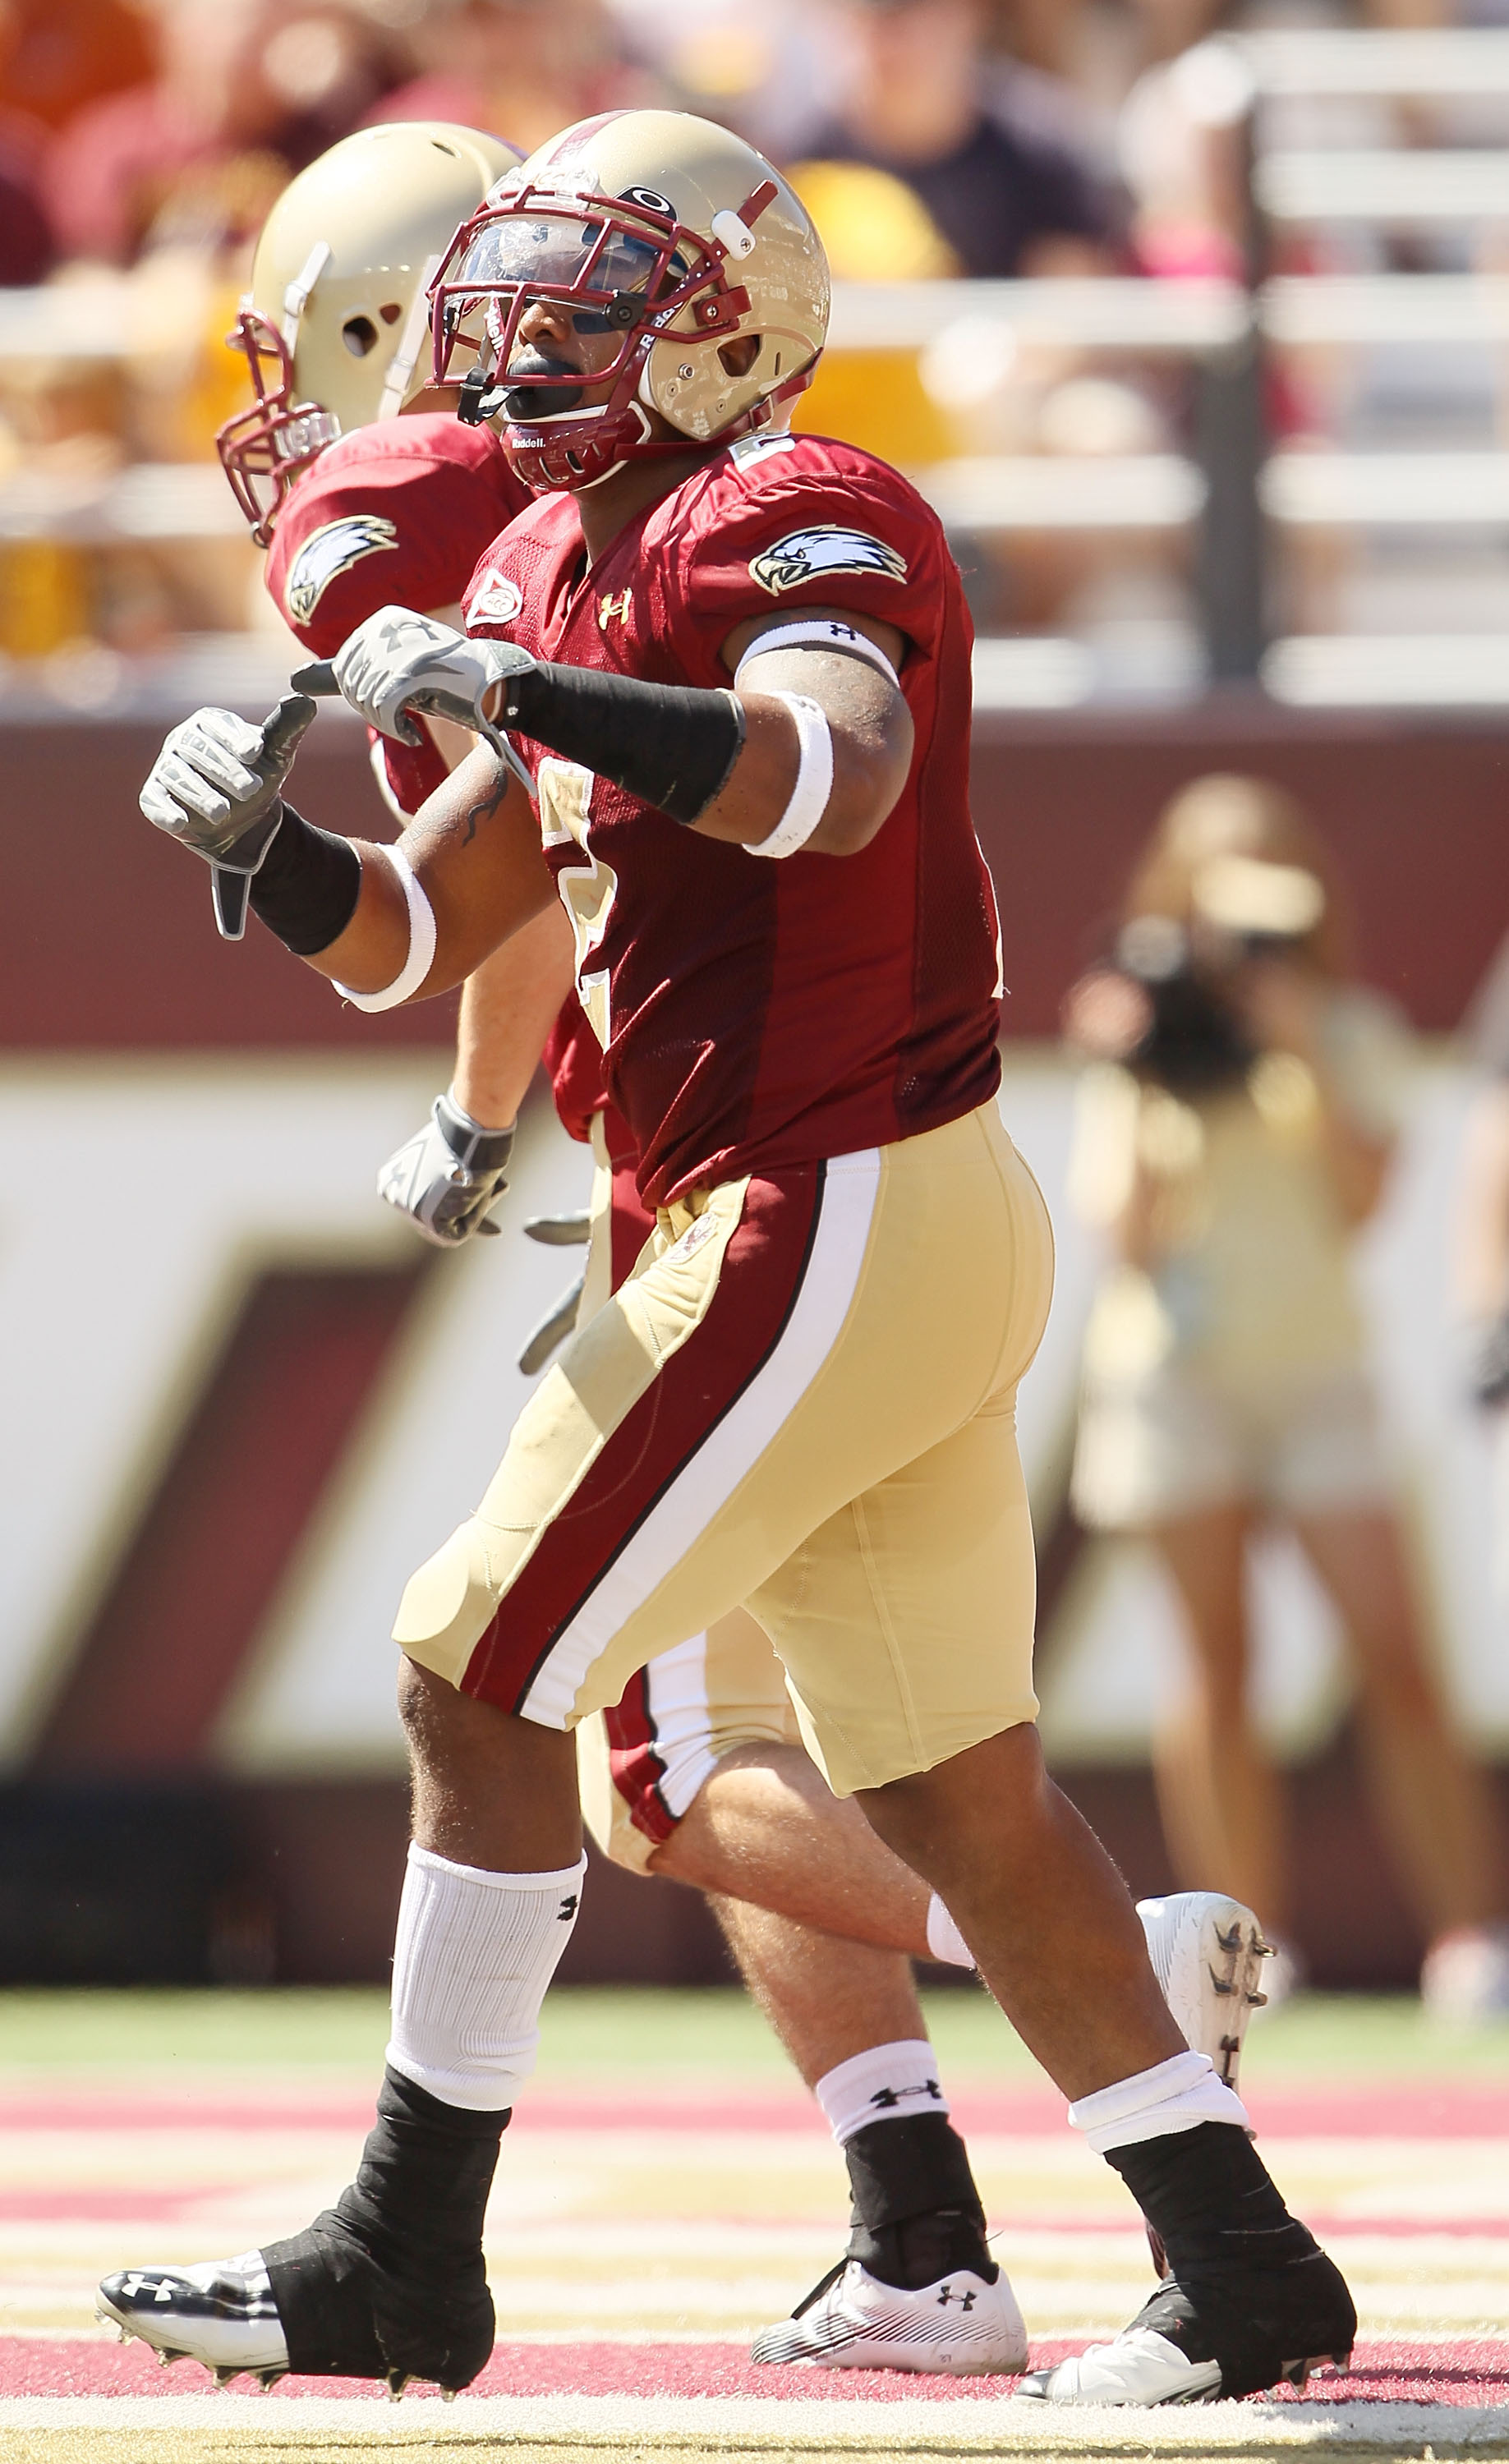 CHESTNUT HILL, MA - SEPTEMBER 04:  Montel Harris #2 of the Boston College Eagles celebrates his touchdown in the second quarter against the Weber State Wildcats on September 4, 2010 at Alumni Stadium in Chestnut Hill, Massachusetts.  (Photo by Elsa/Getty